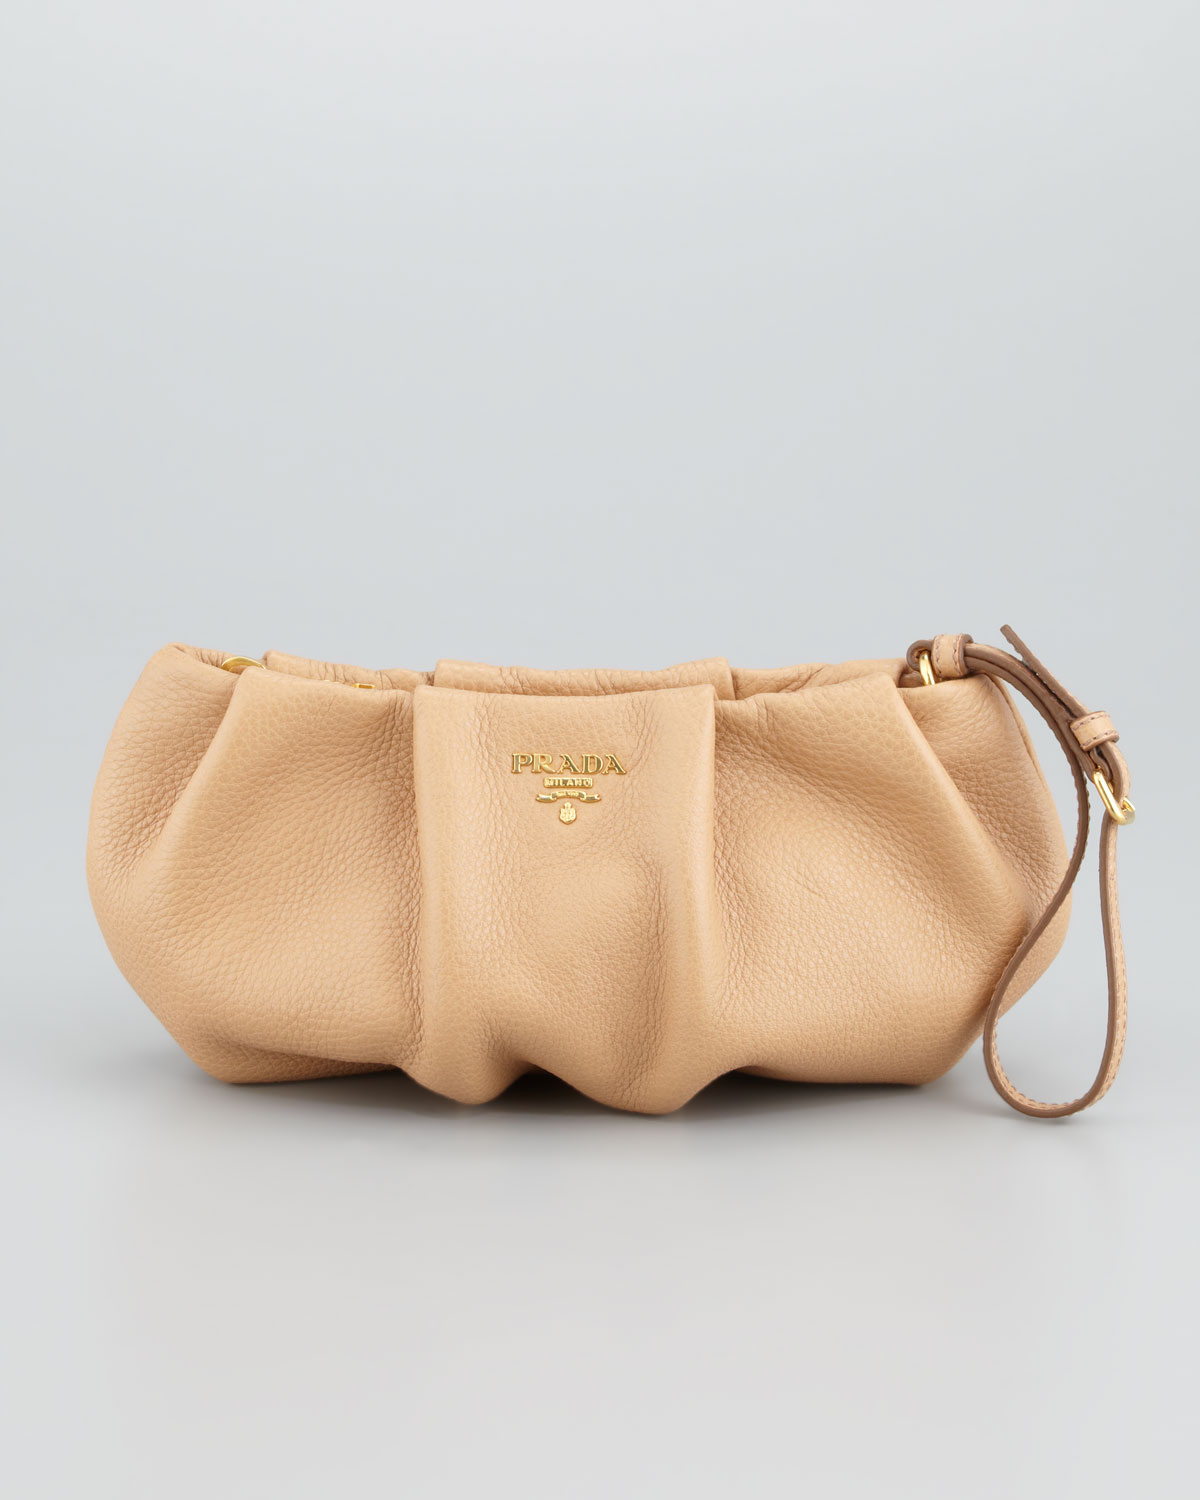 Prada Daino Pleated Wristlet Clutch Bag in Pink (beige) | Lyst